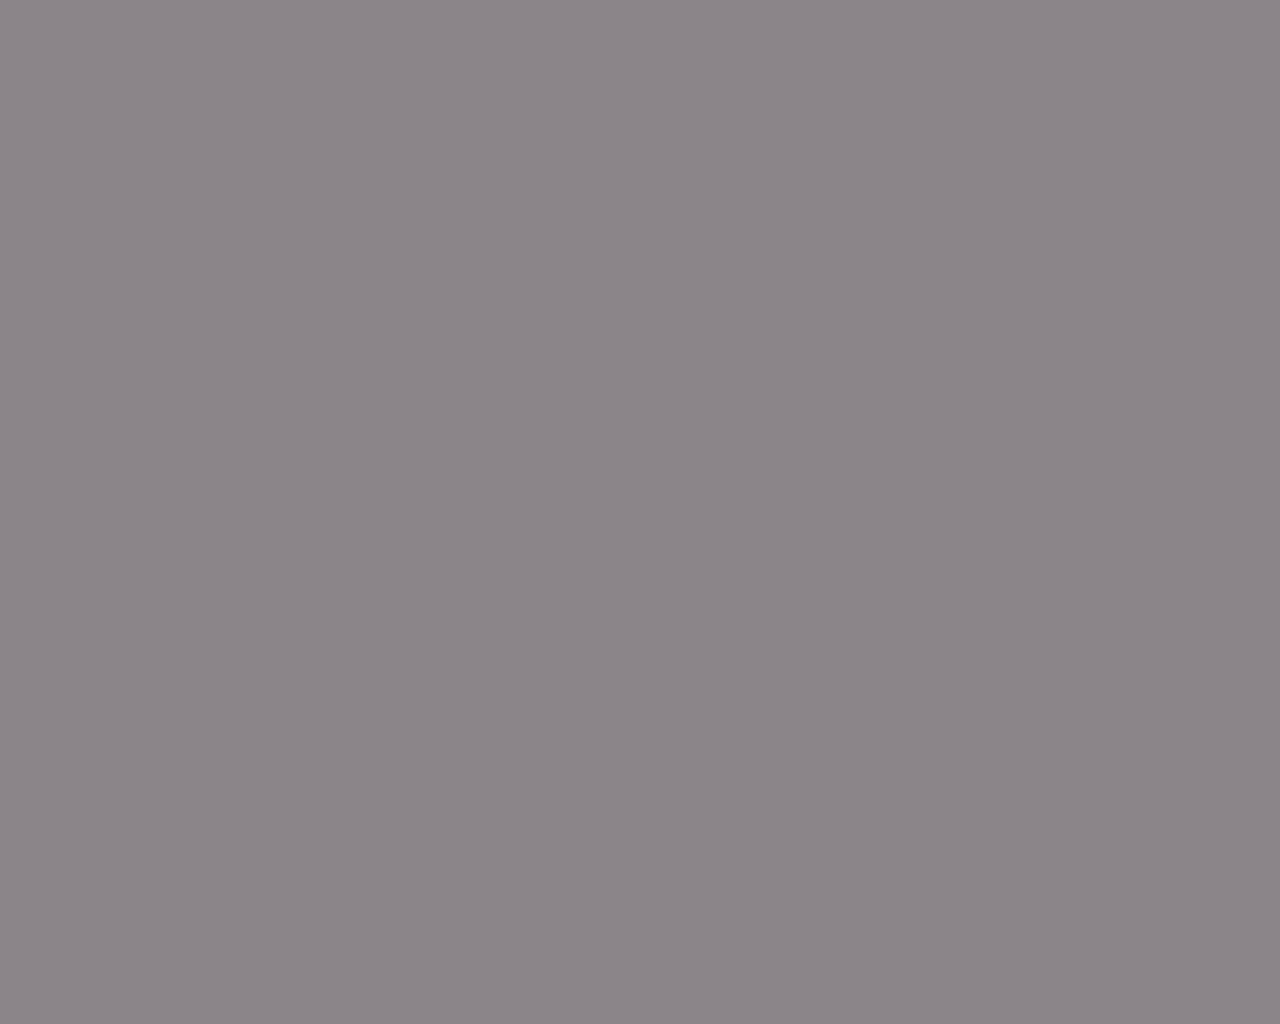 1280x1024 Taupe Gray Solid Color Background